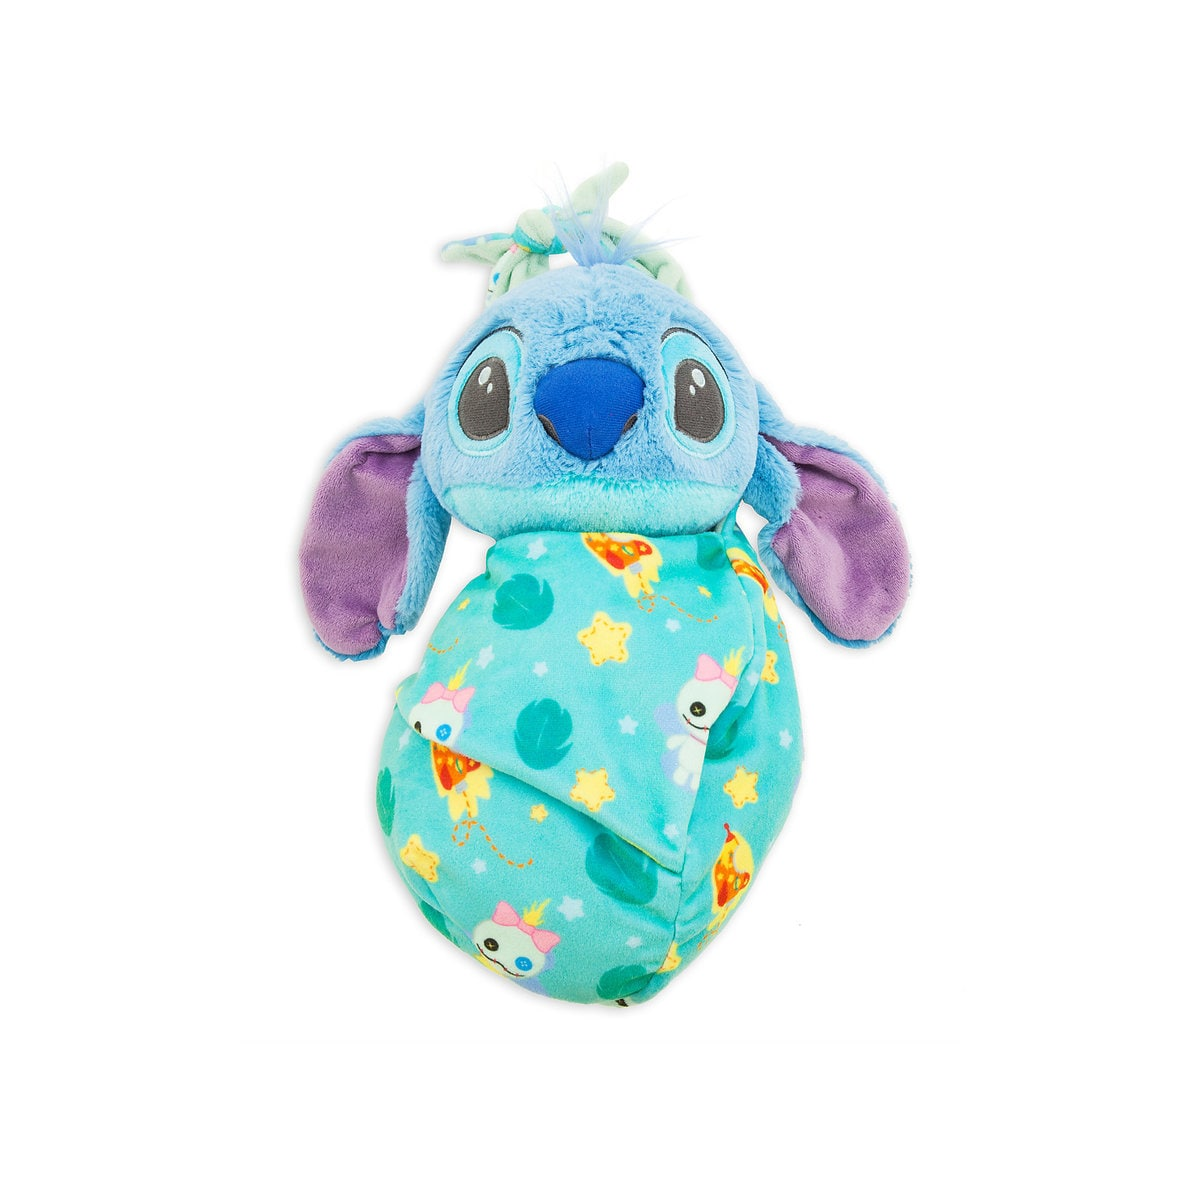 Top 25 Disney Gift Ideas for Babies featured by top US Disney blogger, Marcie and the Mouse: Babies will love this baby Stitch plush toy